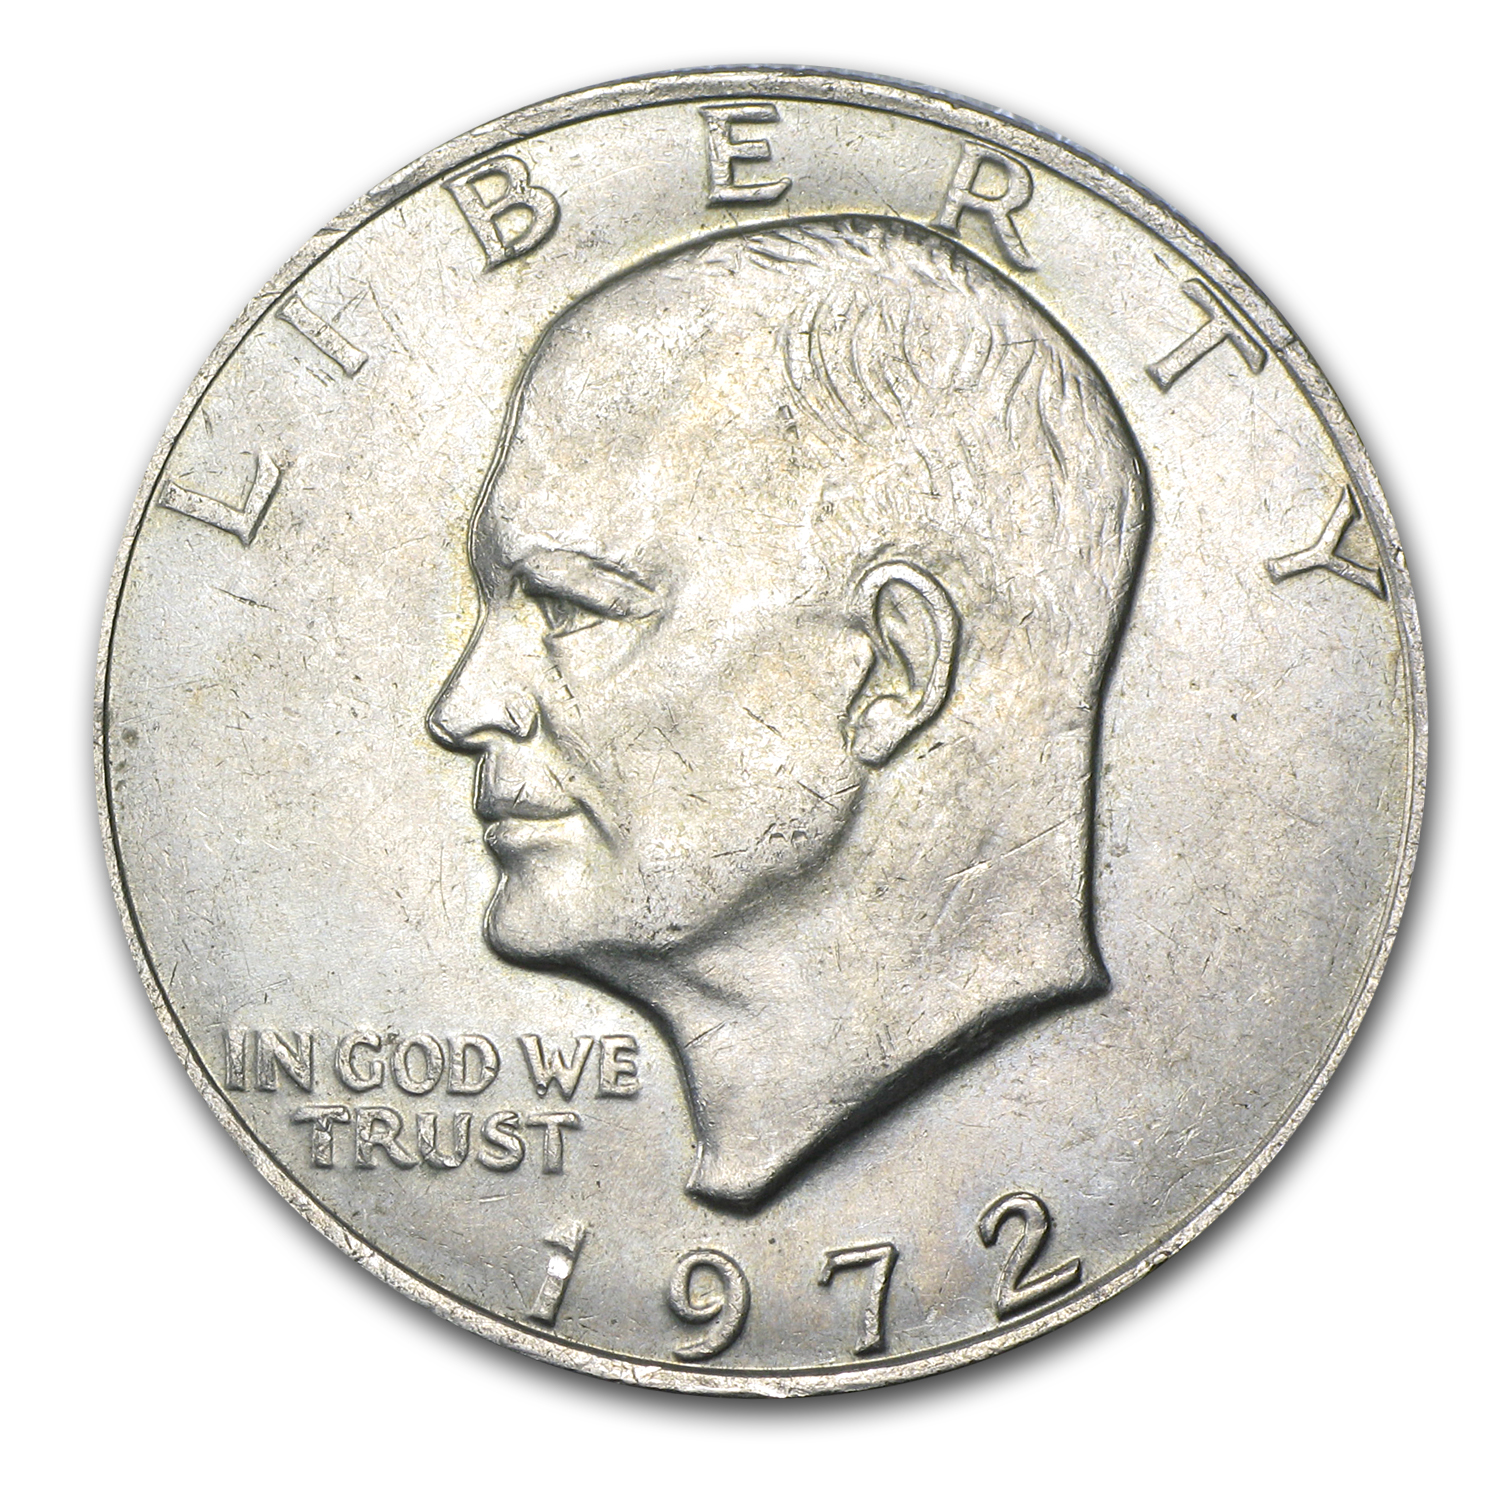 1972 Type 2 Eisenhower Dollar - Almost Uncirculated